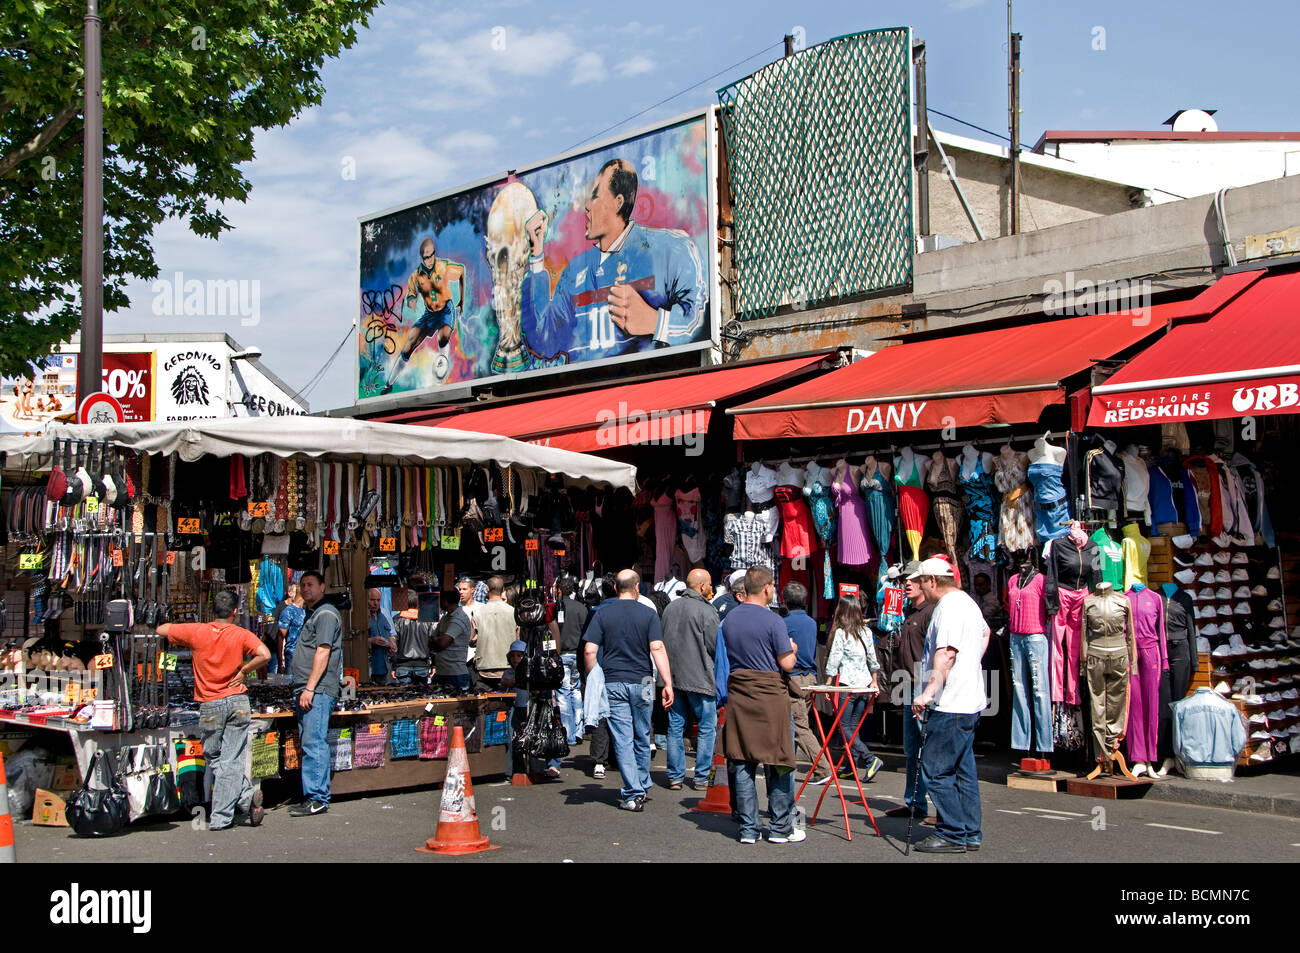 Marche aux puces de saint ouen flea market paris stock photo 25041952 alamy - Marche aux puces de saint ouen saint ouen ...